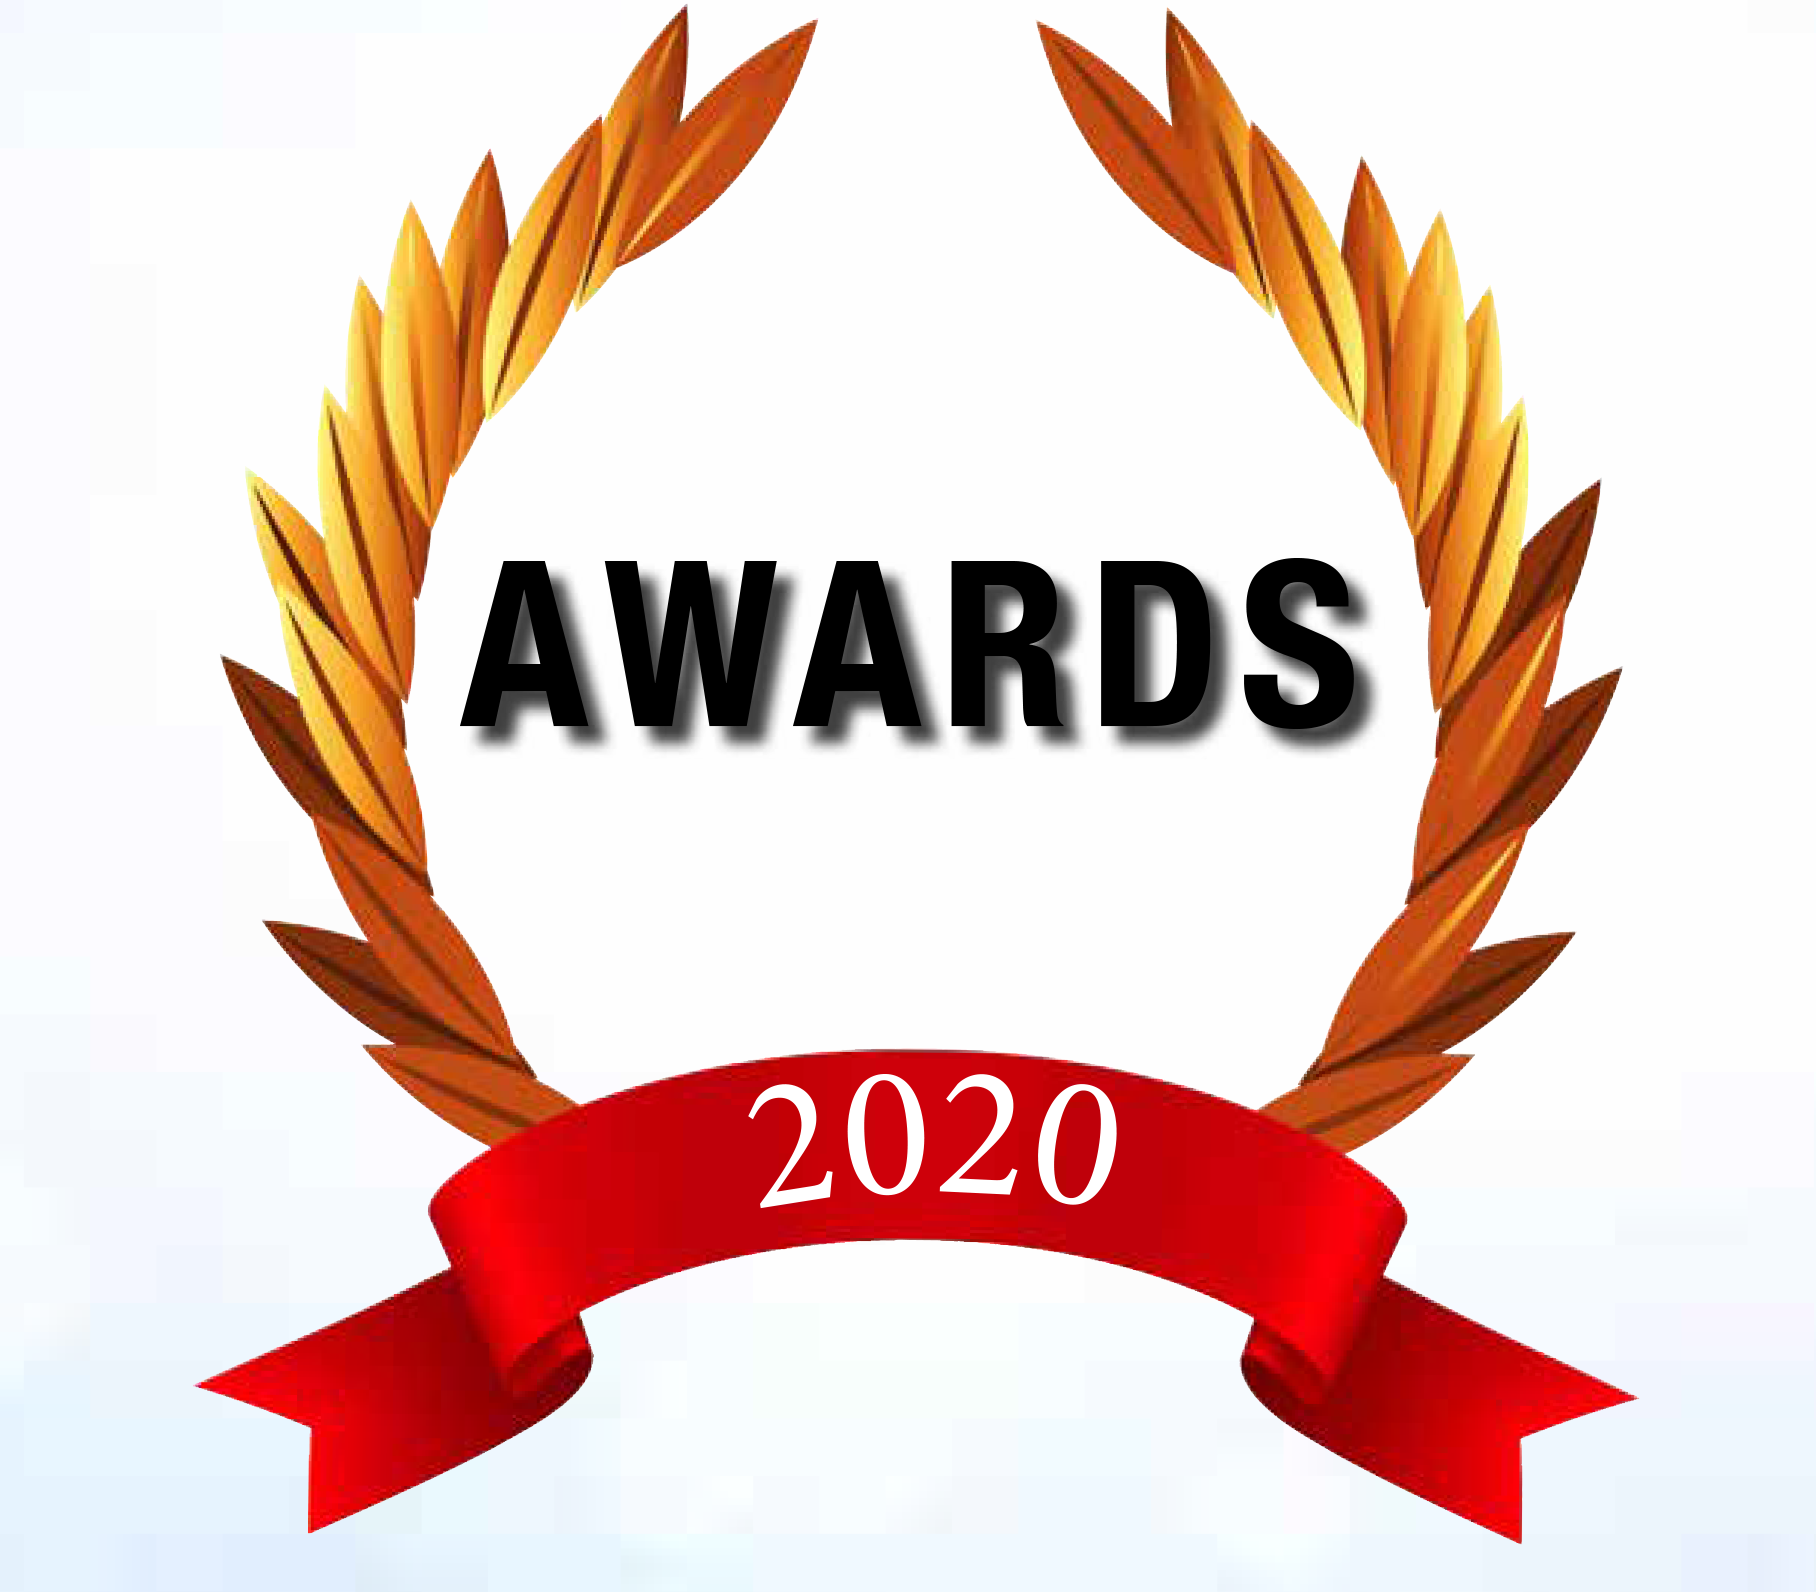 For The Common Good Awards 2020